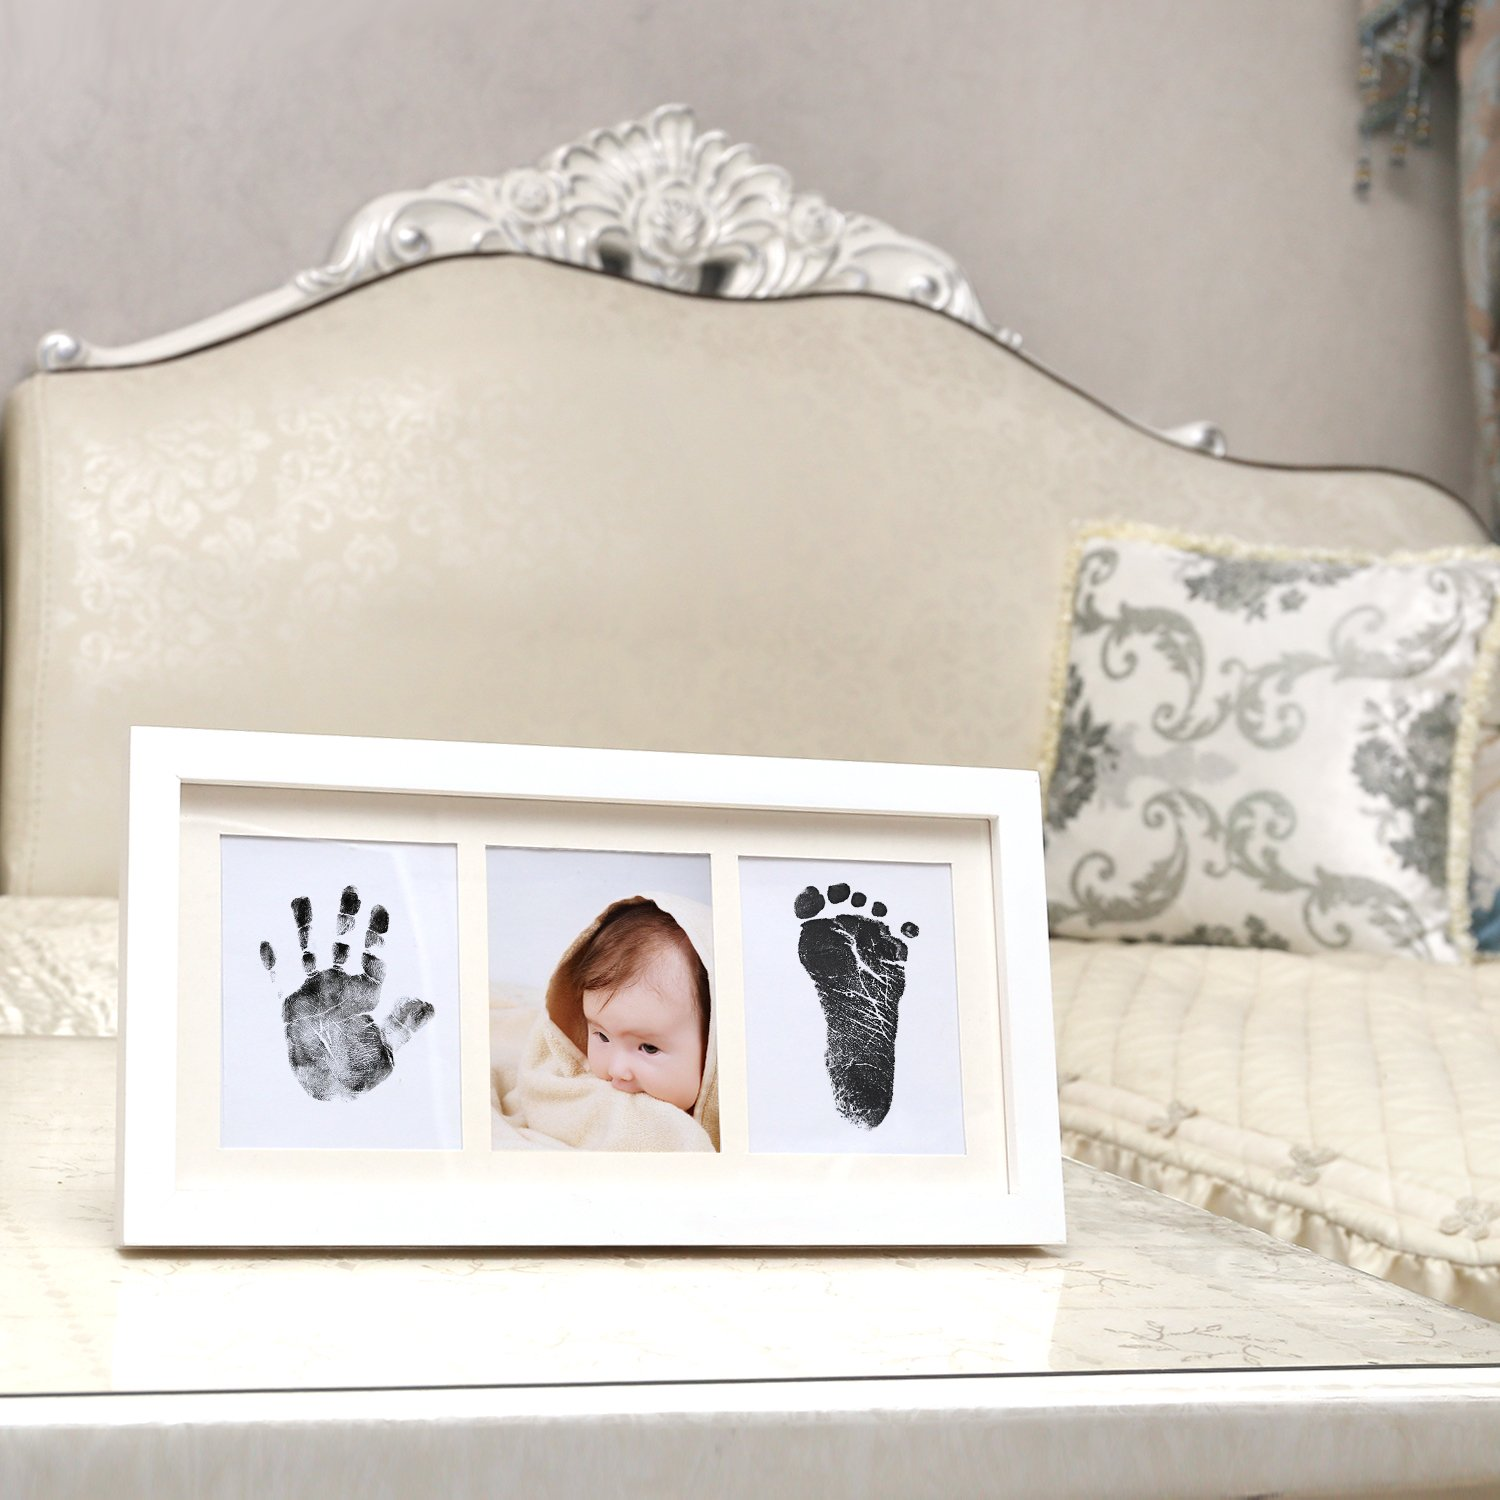 Upala Baby Handprint Footprint Photo Frame Kit Newborn Boys Girls, Babyprints Paper Clean Touch Ink Pad to Create Baby's Prints, Amazing by Upala (Image #3)